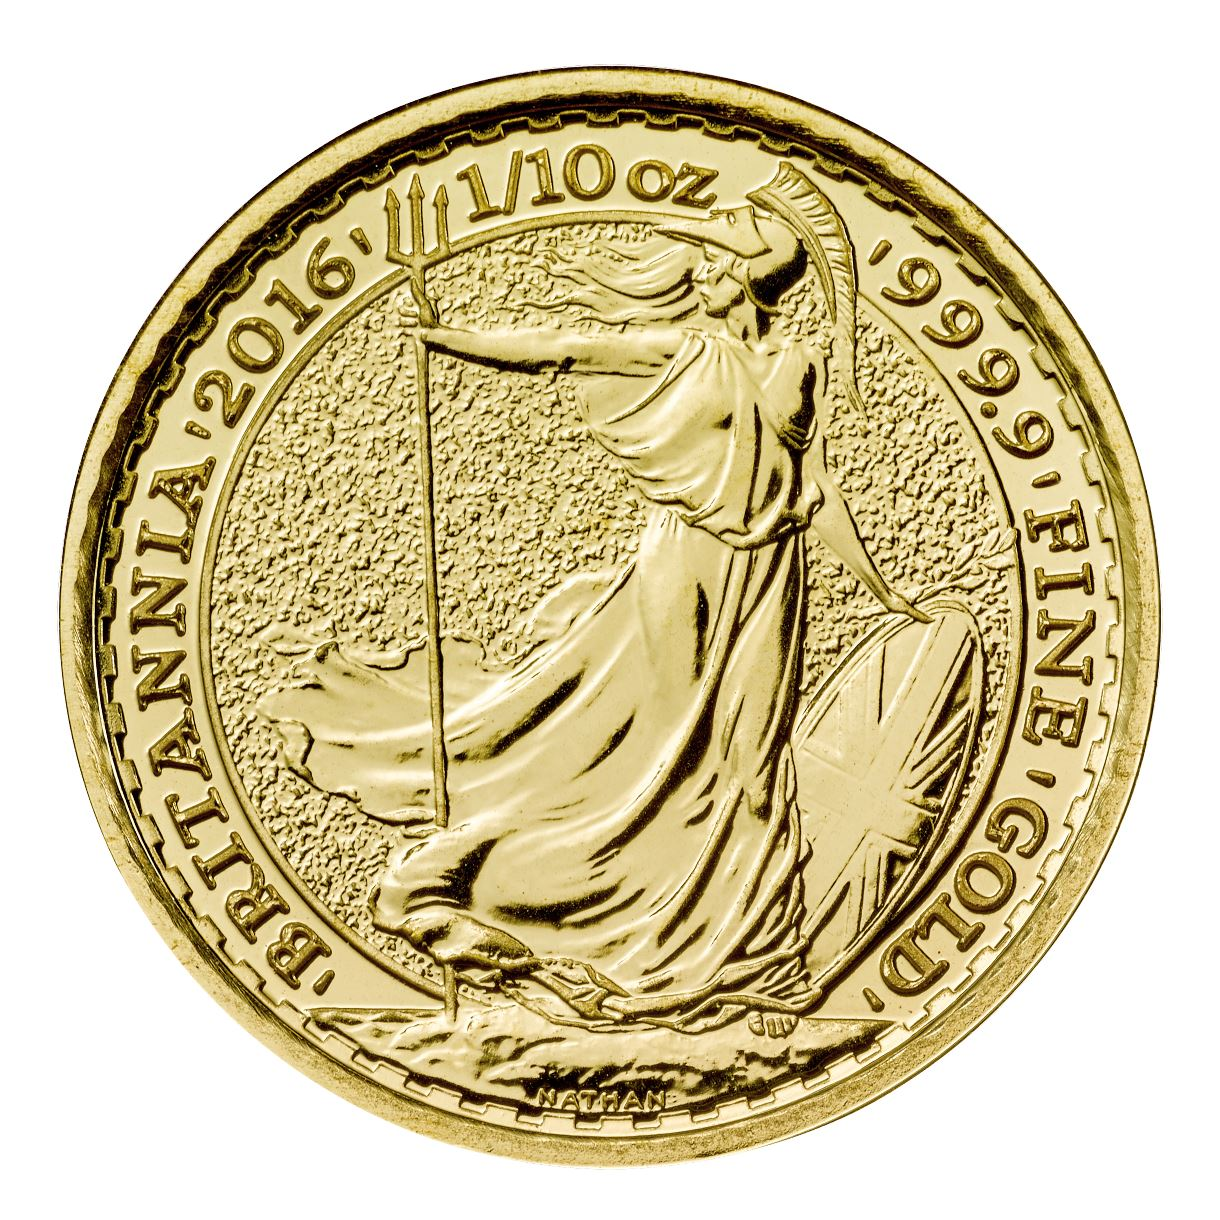 2016 Tenth Ounce Gold Britannia